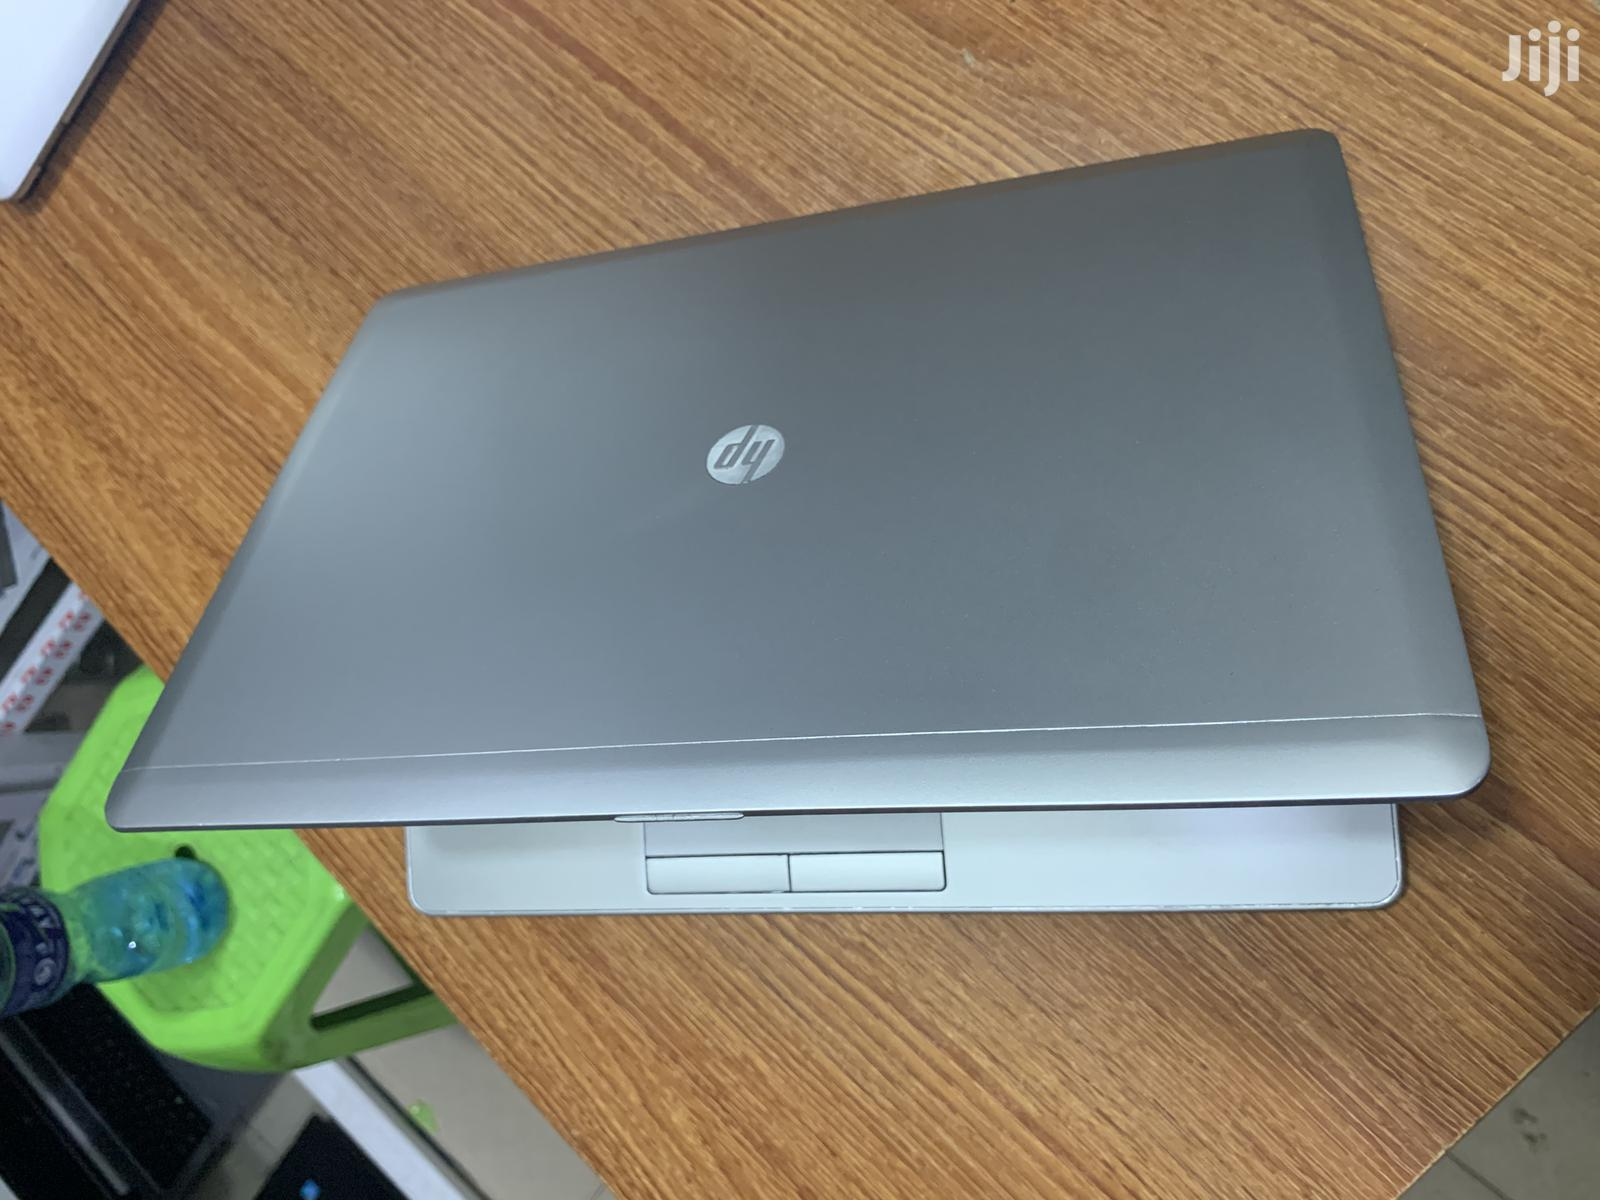 Laptop HP EliteBook Folio 9470M 6GB Intel Core i5 HDD 500GB | Laptops & Computers for sale in Kokomlemle, Greater Accra, Ghana